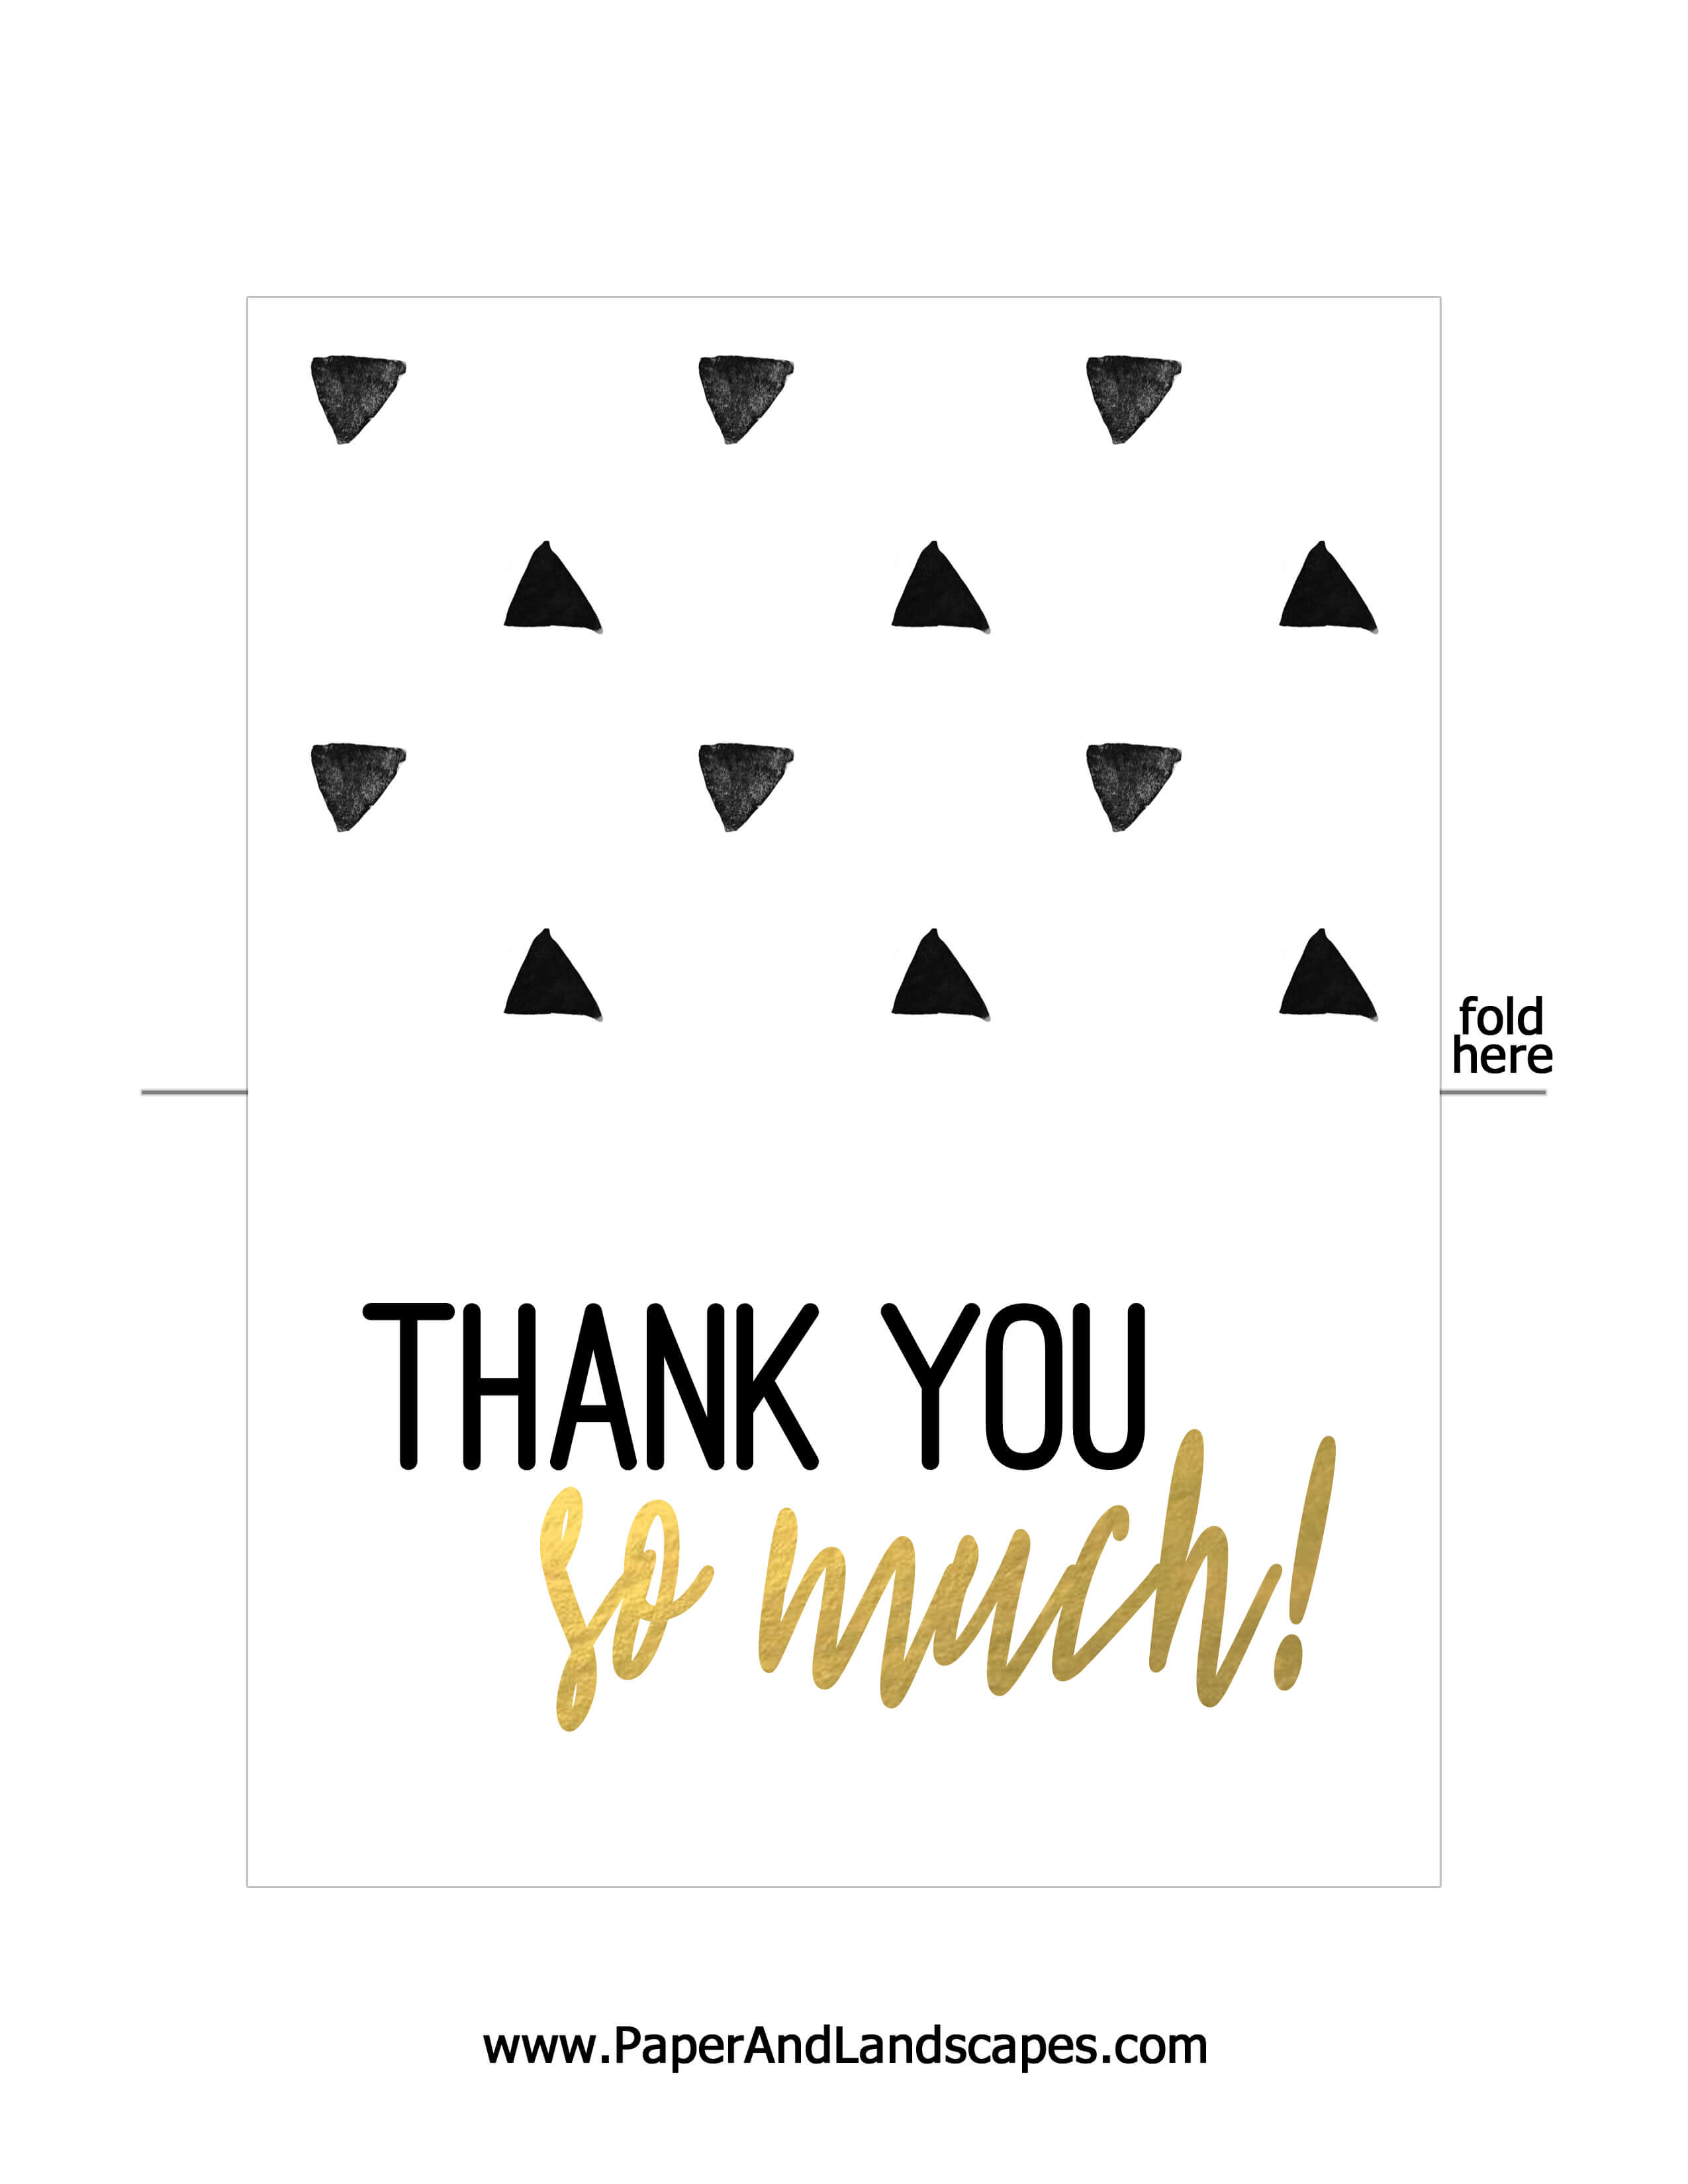 Free Printable Thank You Cards - Paper And Landscapes intended for Free Printable Thank You Card Template